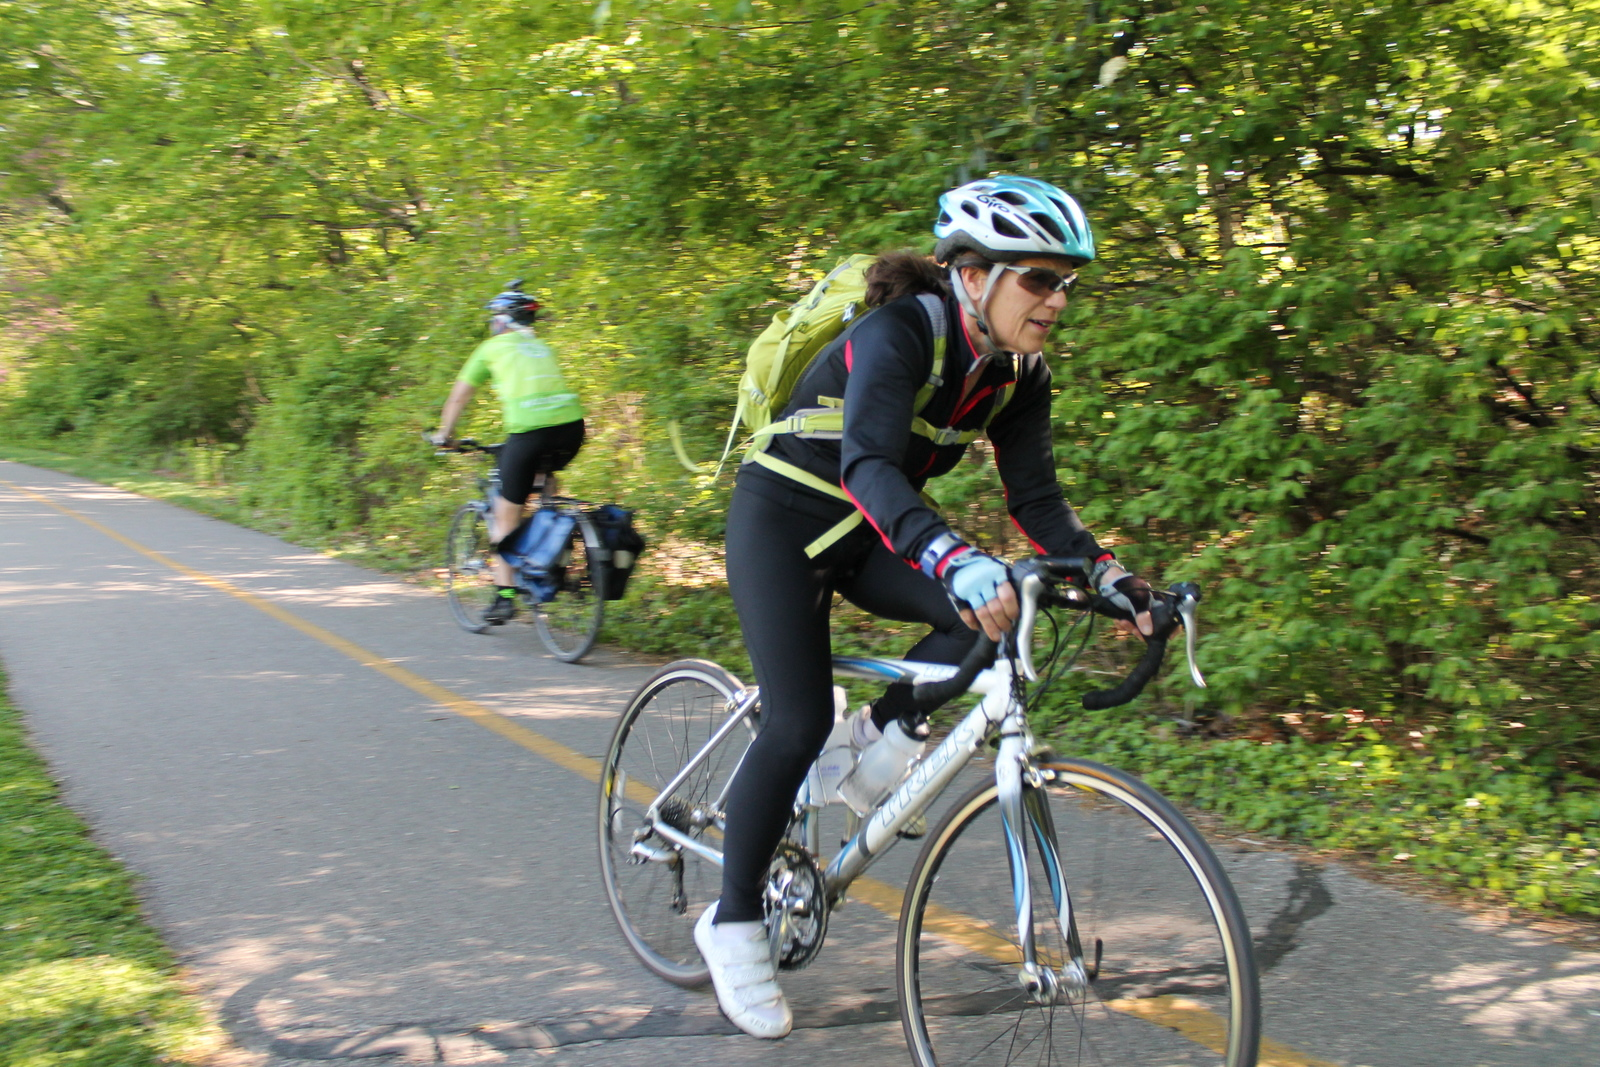 Saturday's bike ride is just a spin away. You could be on the W&OD Trail in mere minutes.